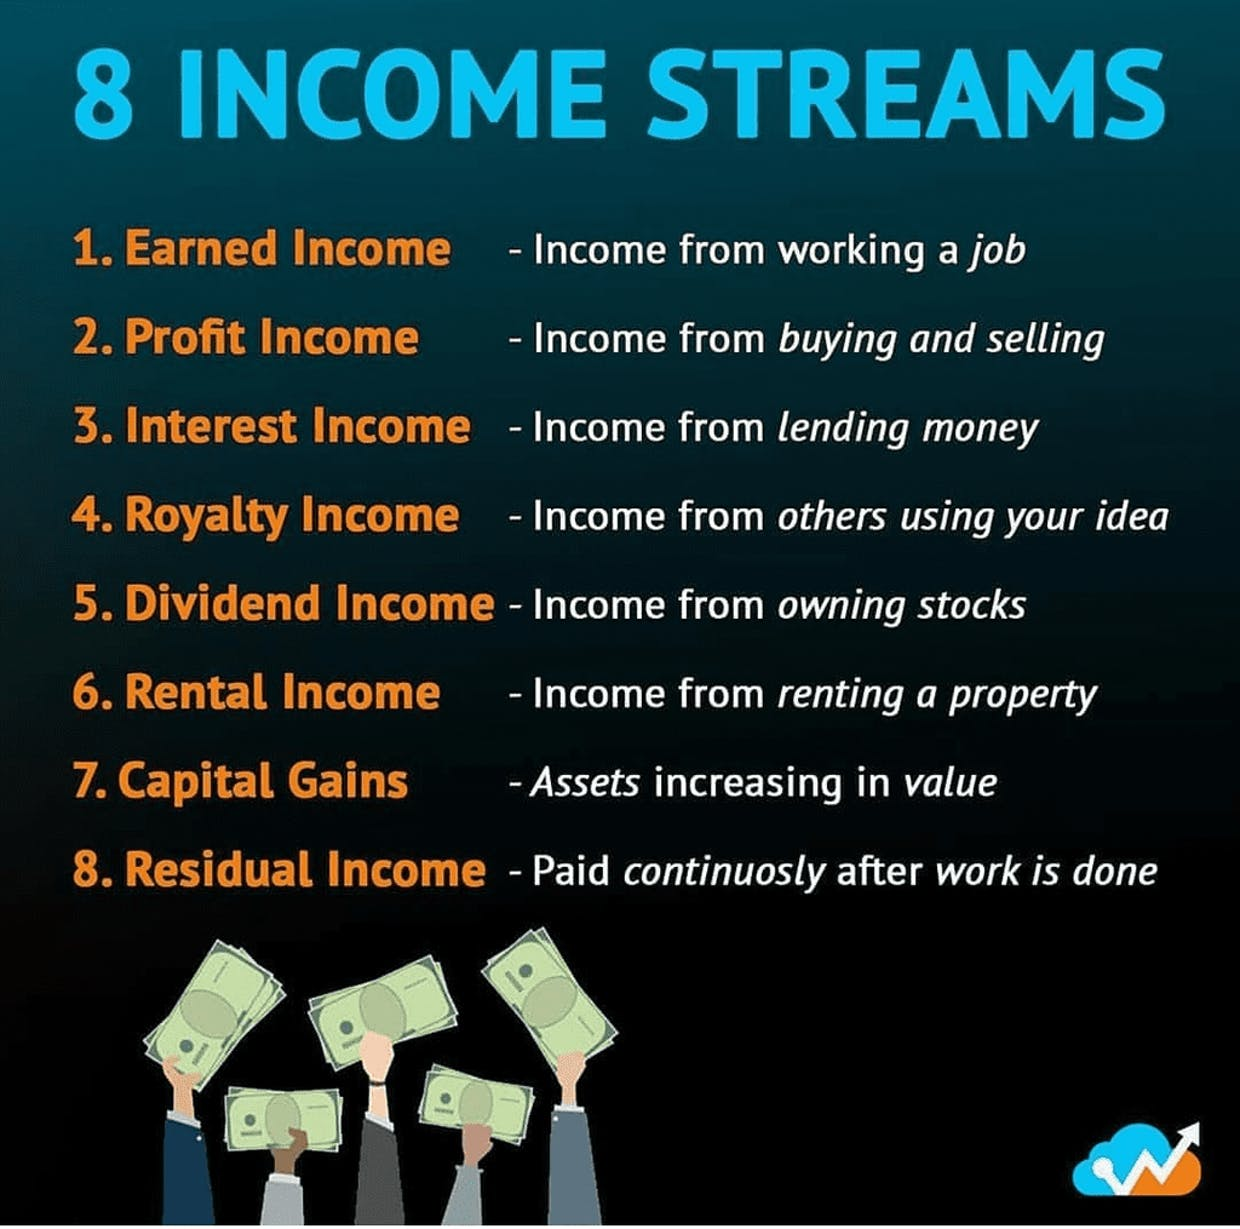 Various streams of income